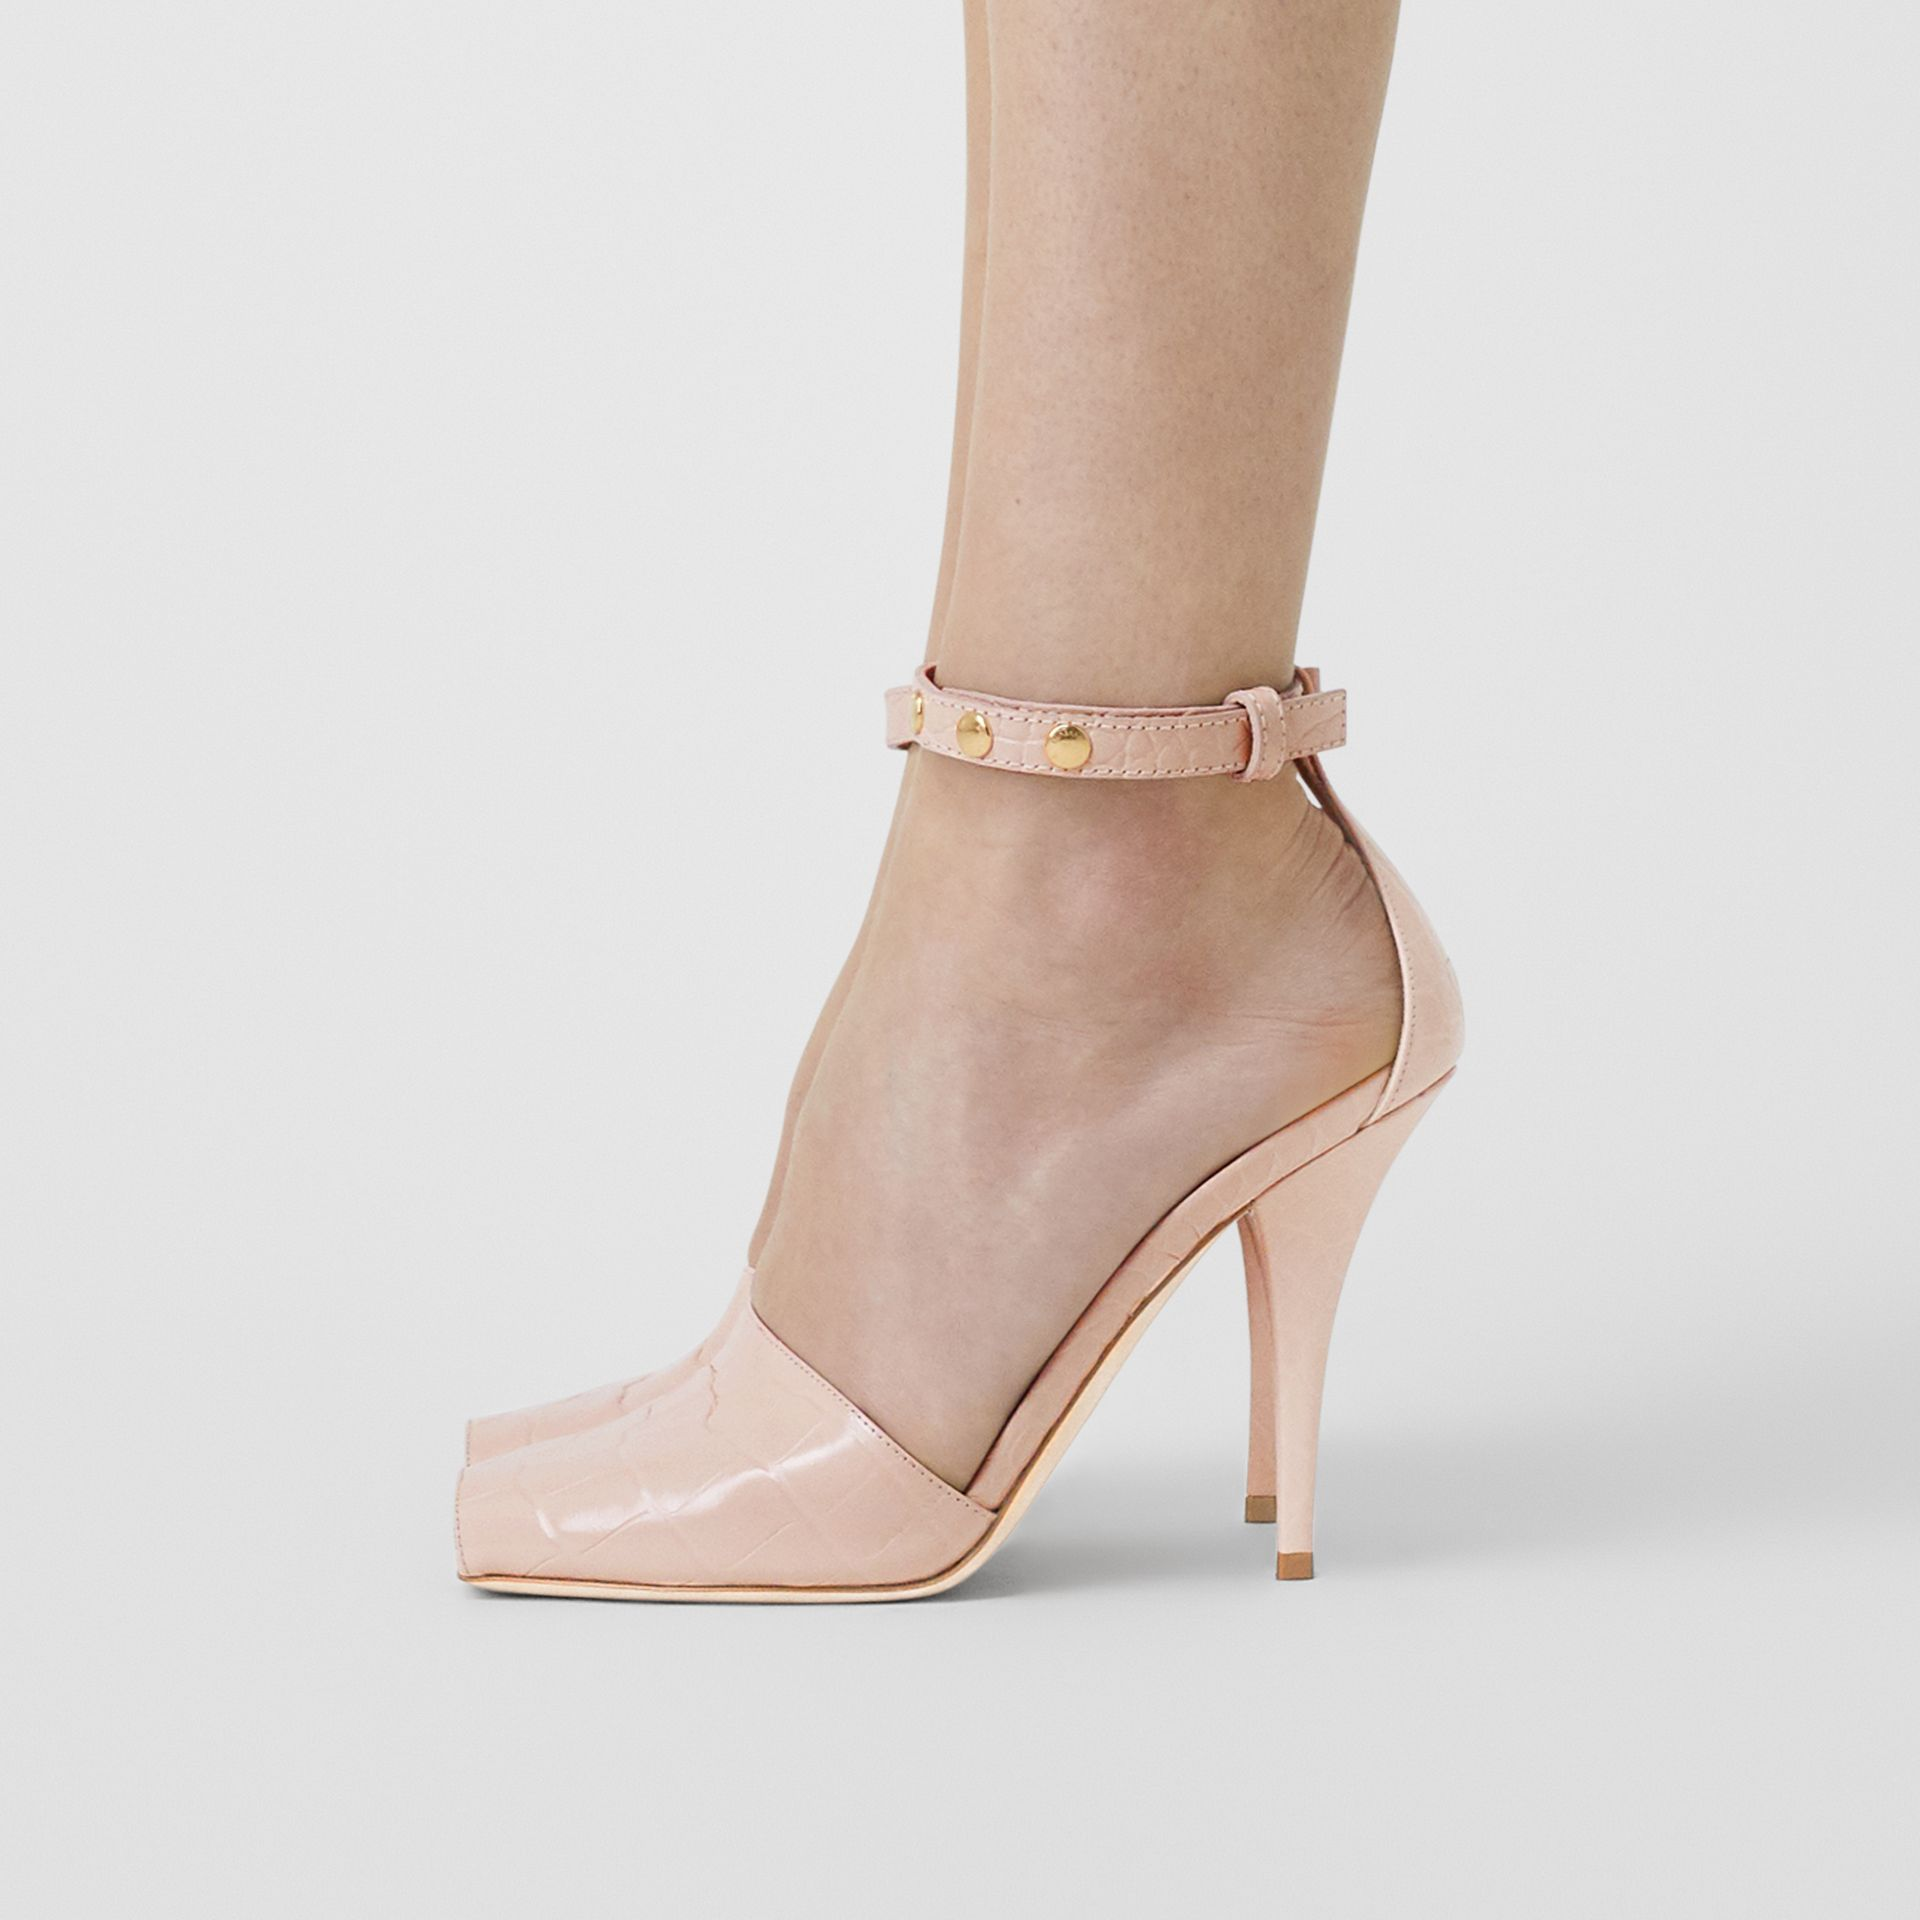 Triple Stud Embossed Leather Peep-toe Sandals in Rose Beige - Women | Burberry - gallery image 2